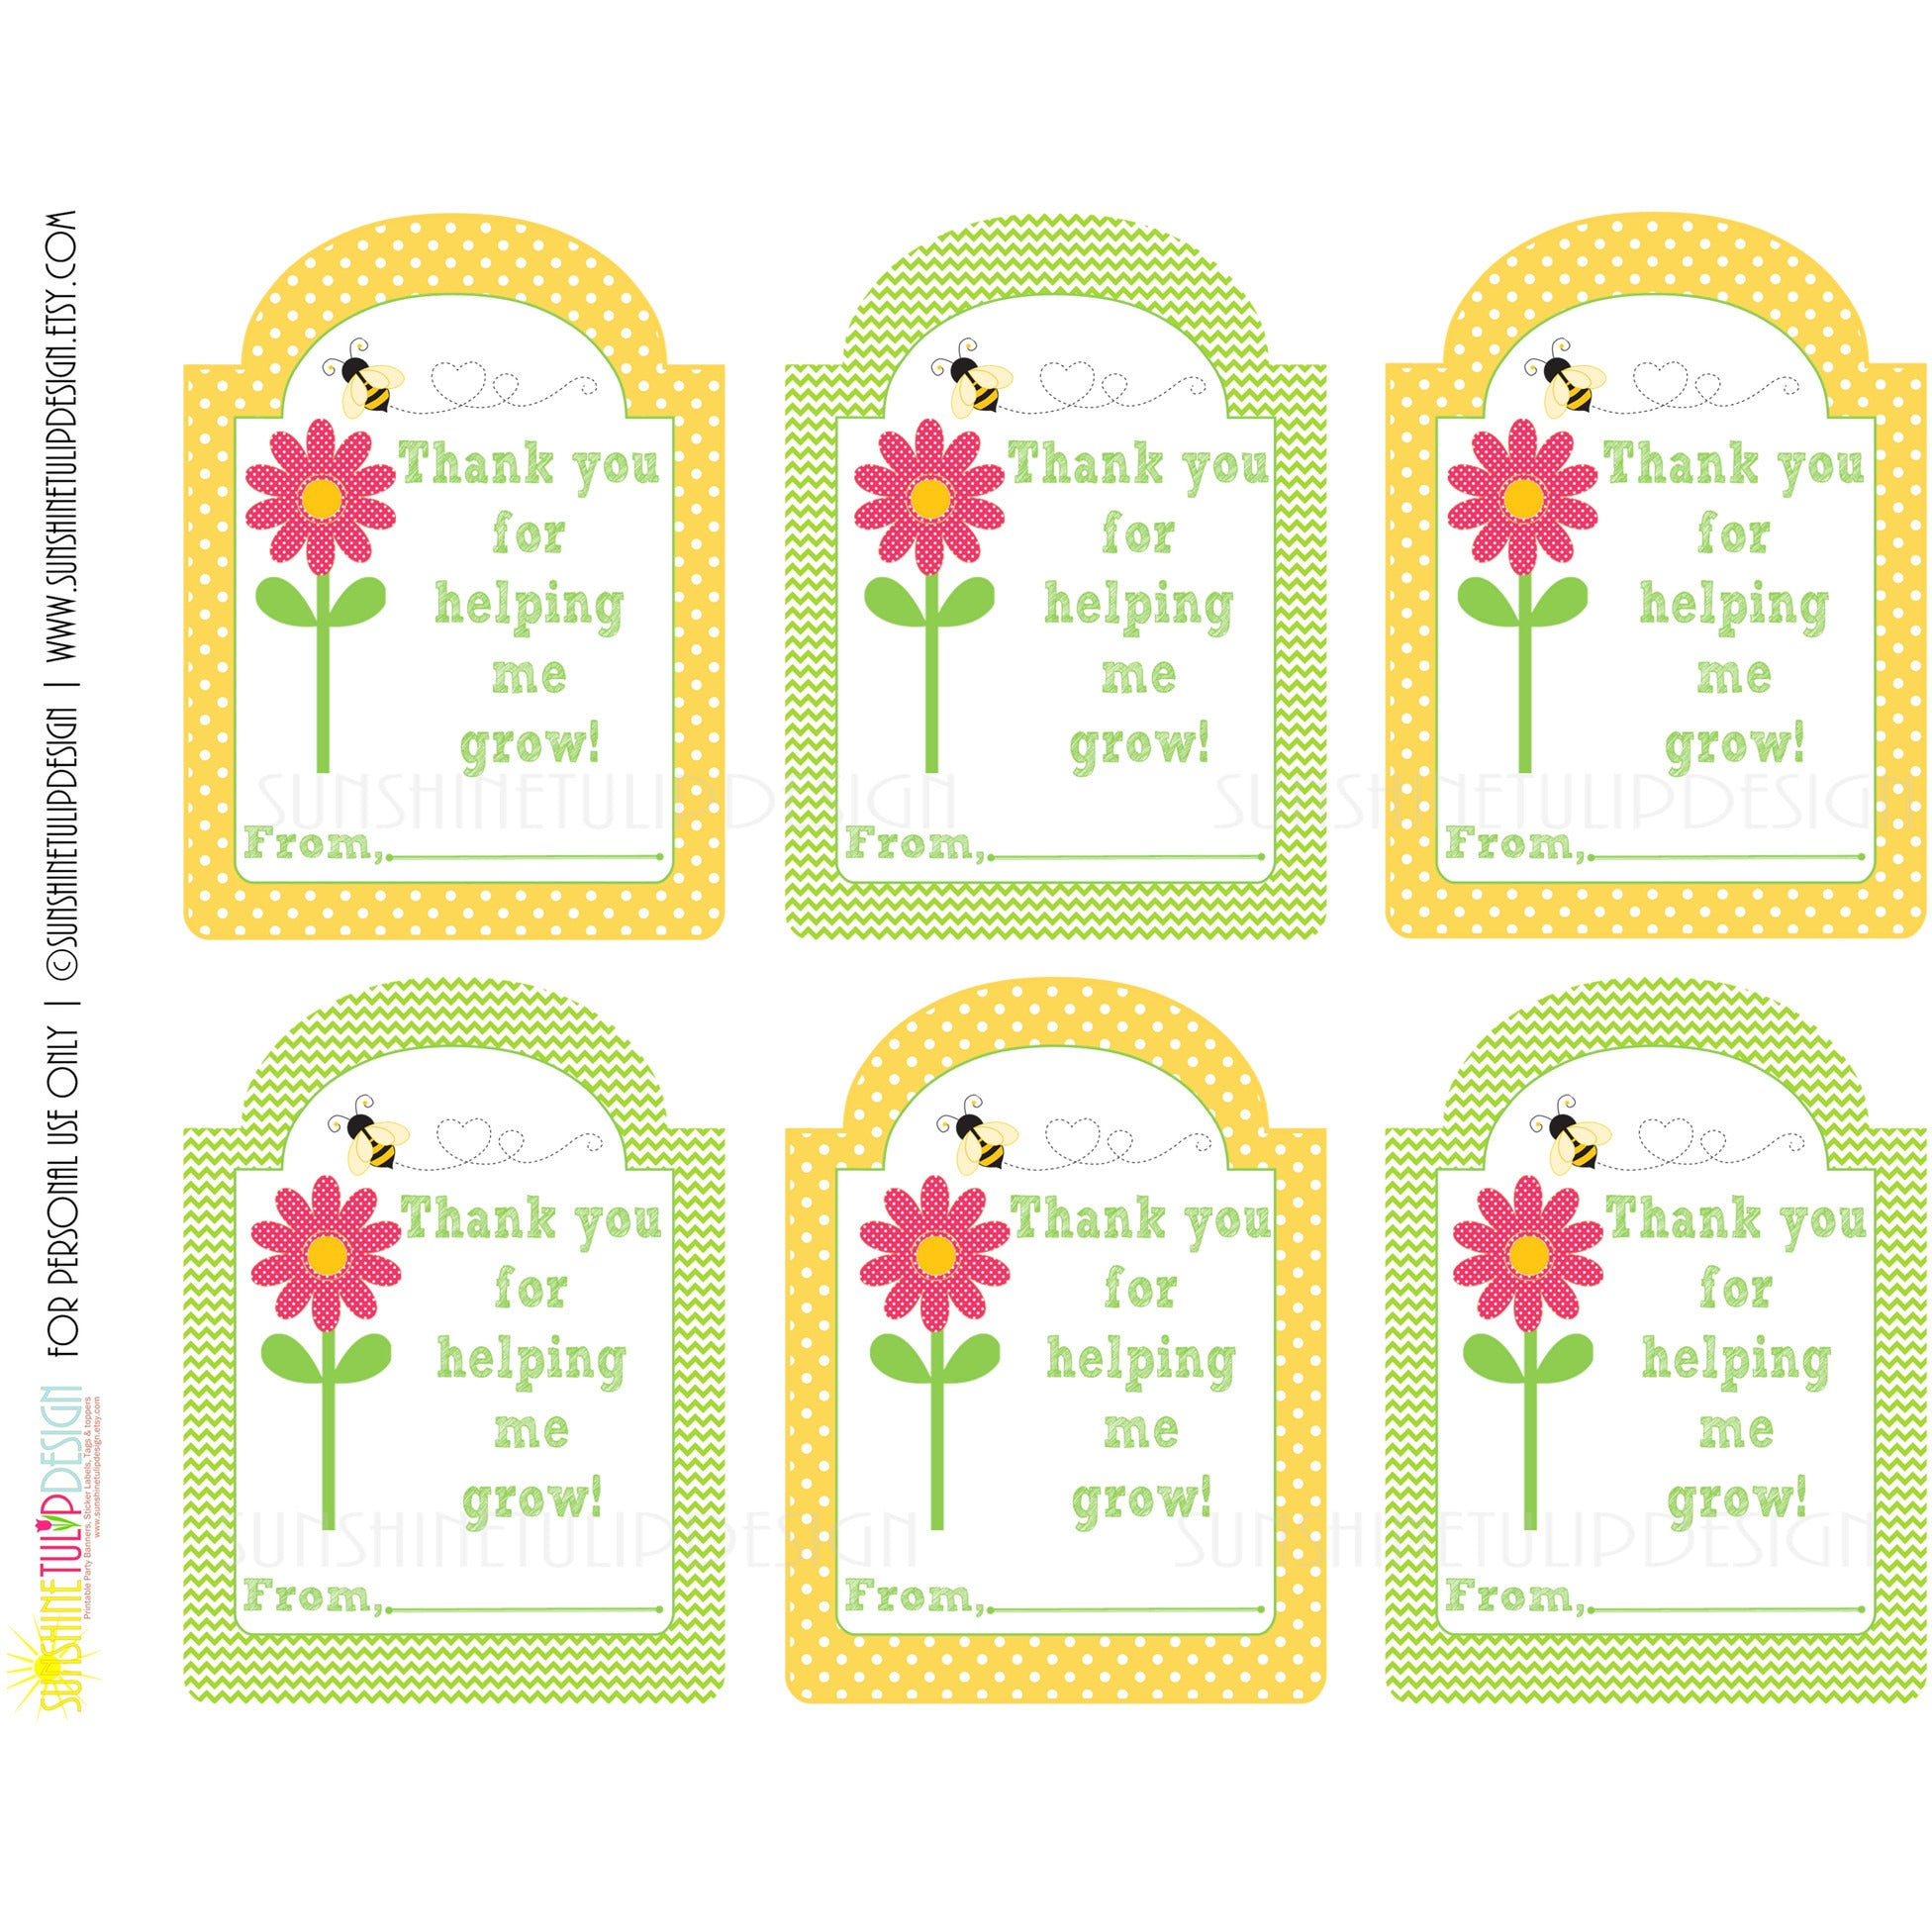 Printable Teacher Appreciation Gift Tags, Thank You for